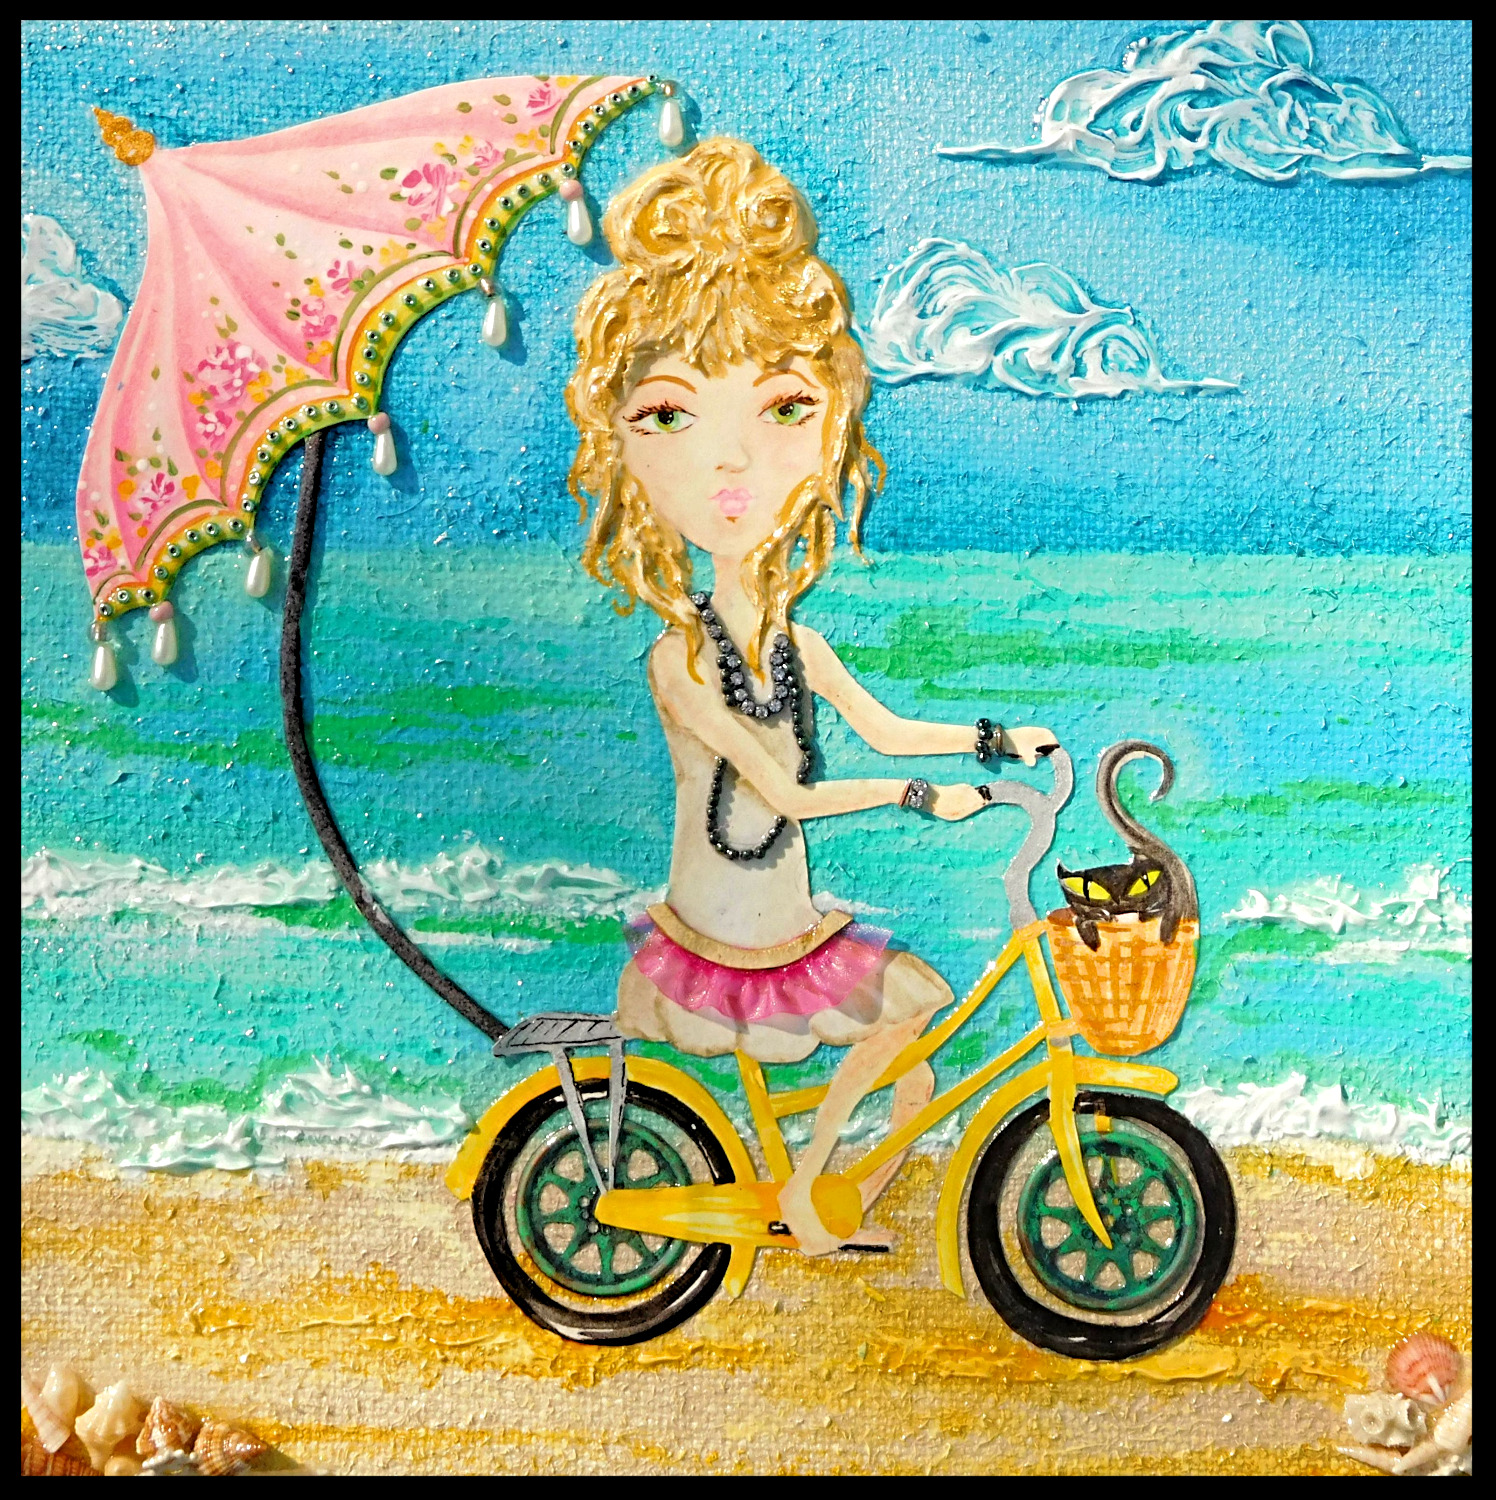 Boho Beach Girl 10X10 SOLD